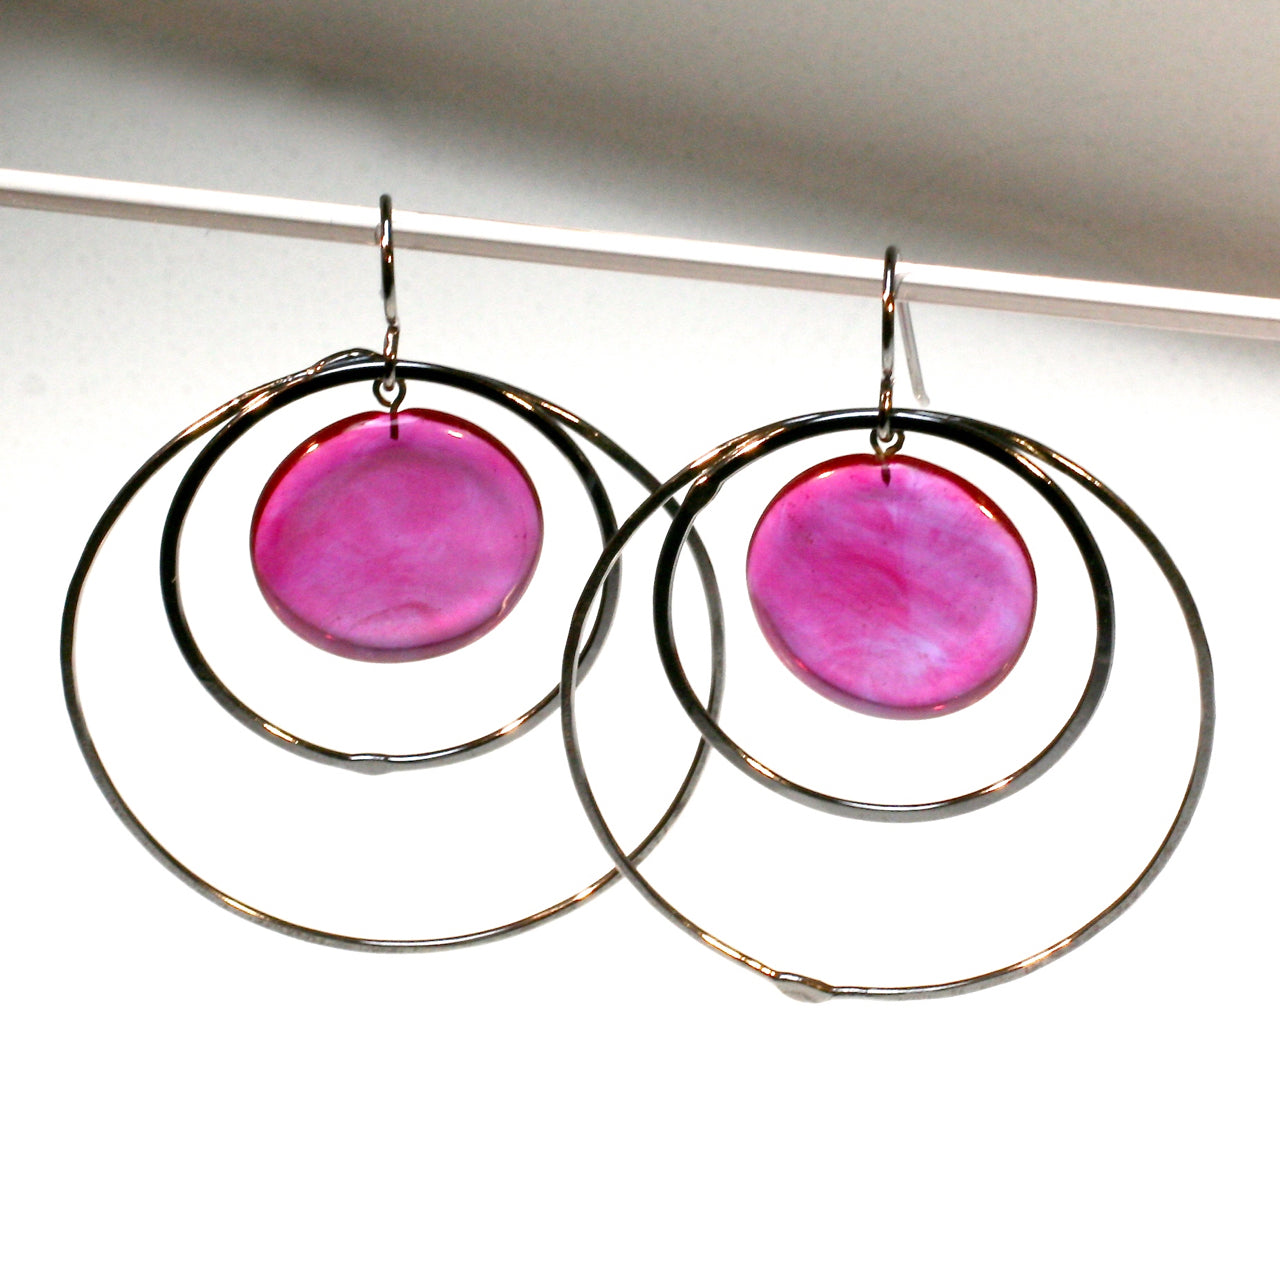 Plato Earrings: MaryLind